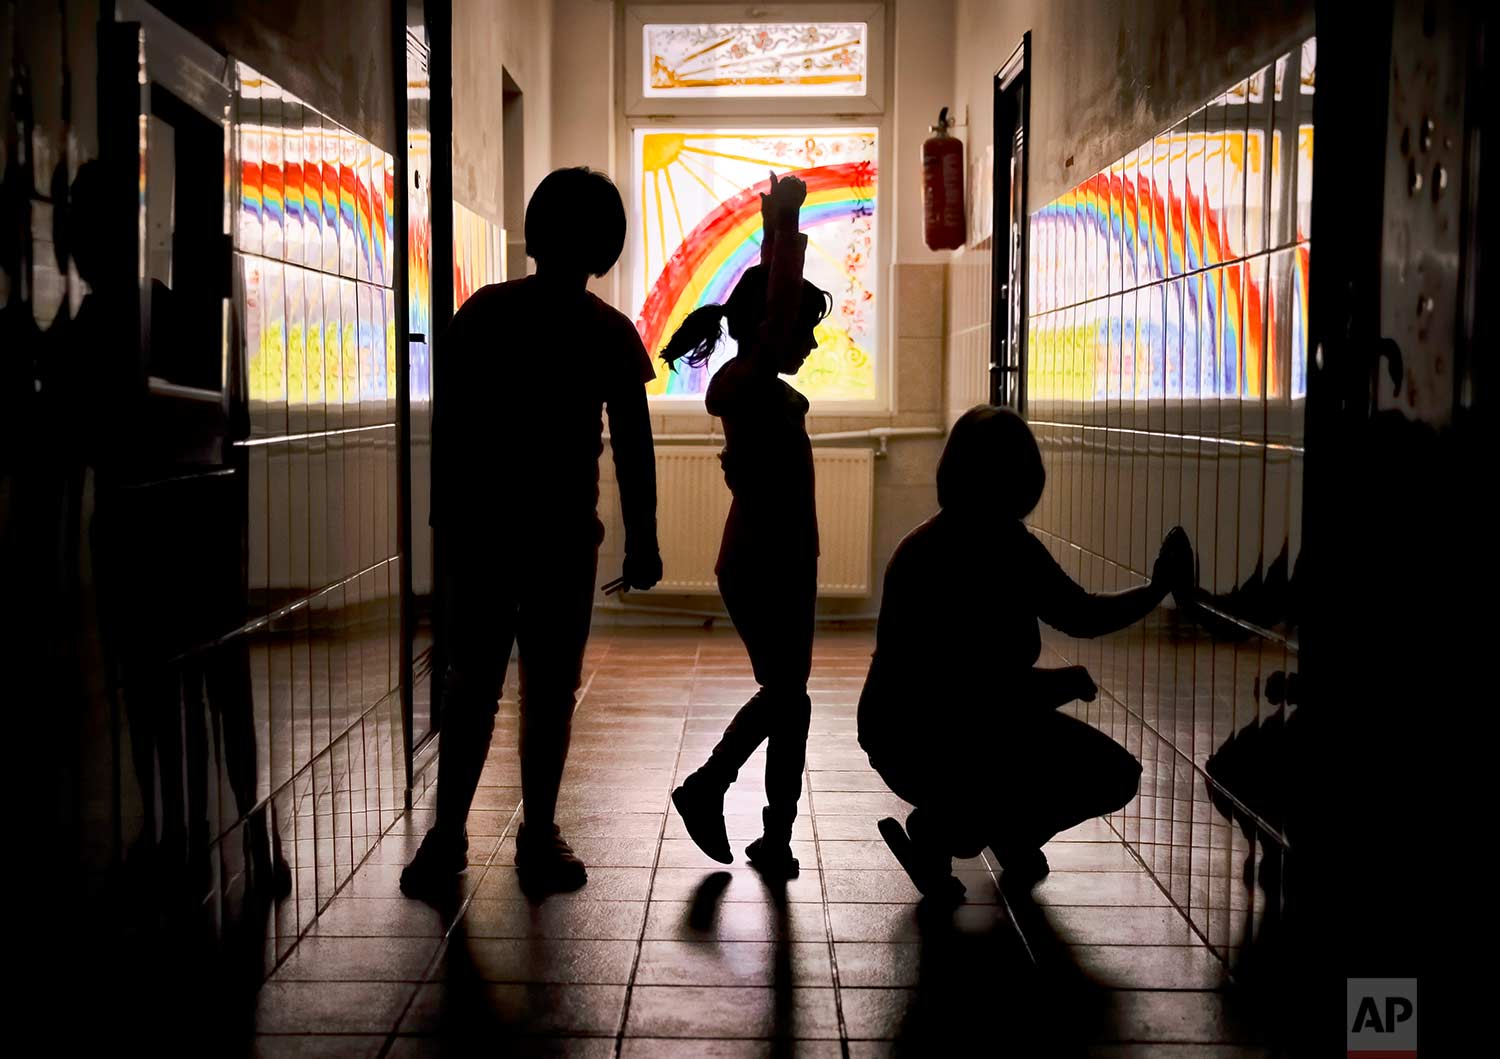 Sara, a child living at the Robin Hood orphanage, tries a ballet move while posing for a photo with other children in a corridor with painted windows, in Bucharest, Romania, on Friday, Nov. 3, 2017. (AP Photo/Vadim Ghirda)